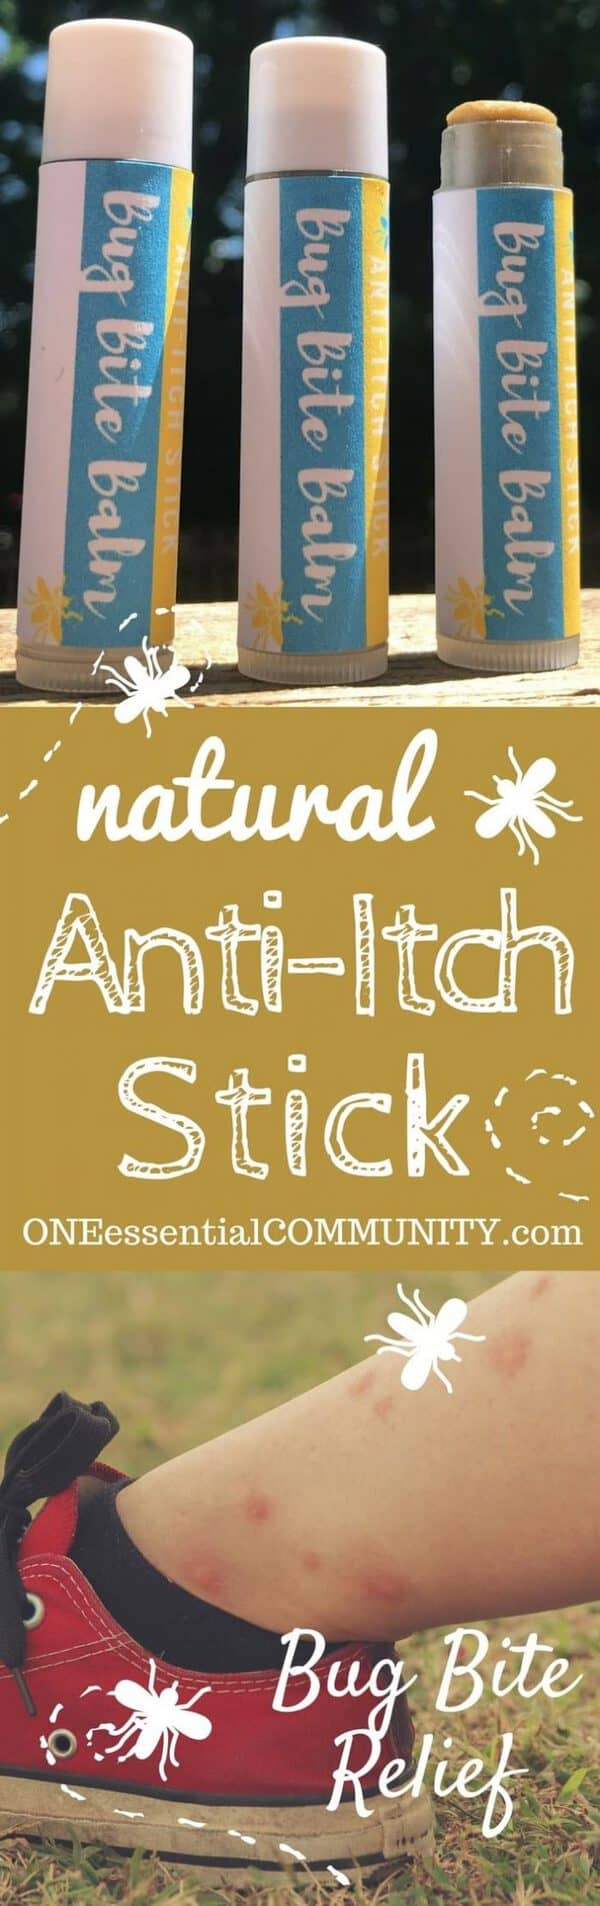 Got a bug bite, rash or other itchy nuisance? homemade natural anti-itch stick with essential oils. Itch relief in no time!